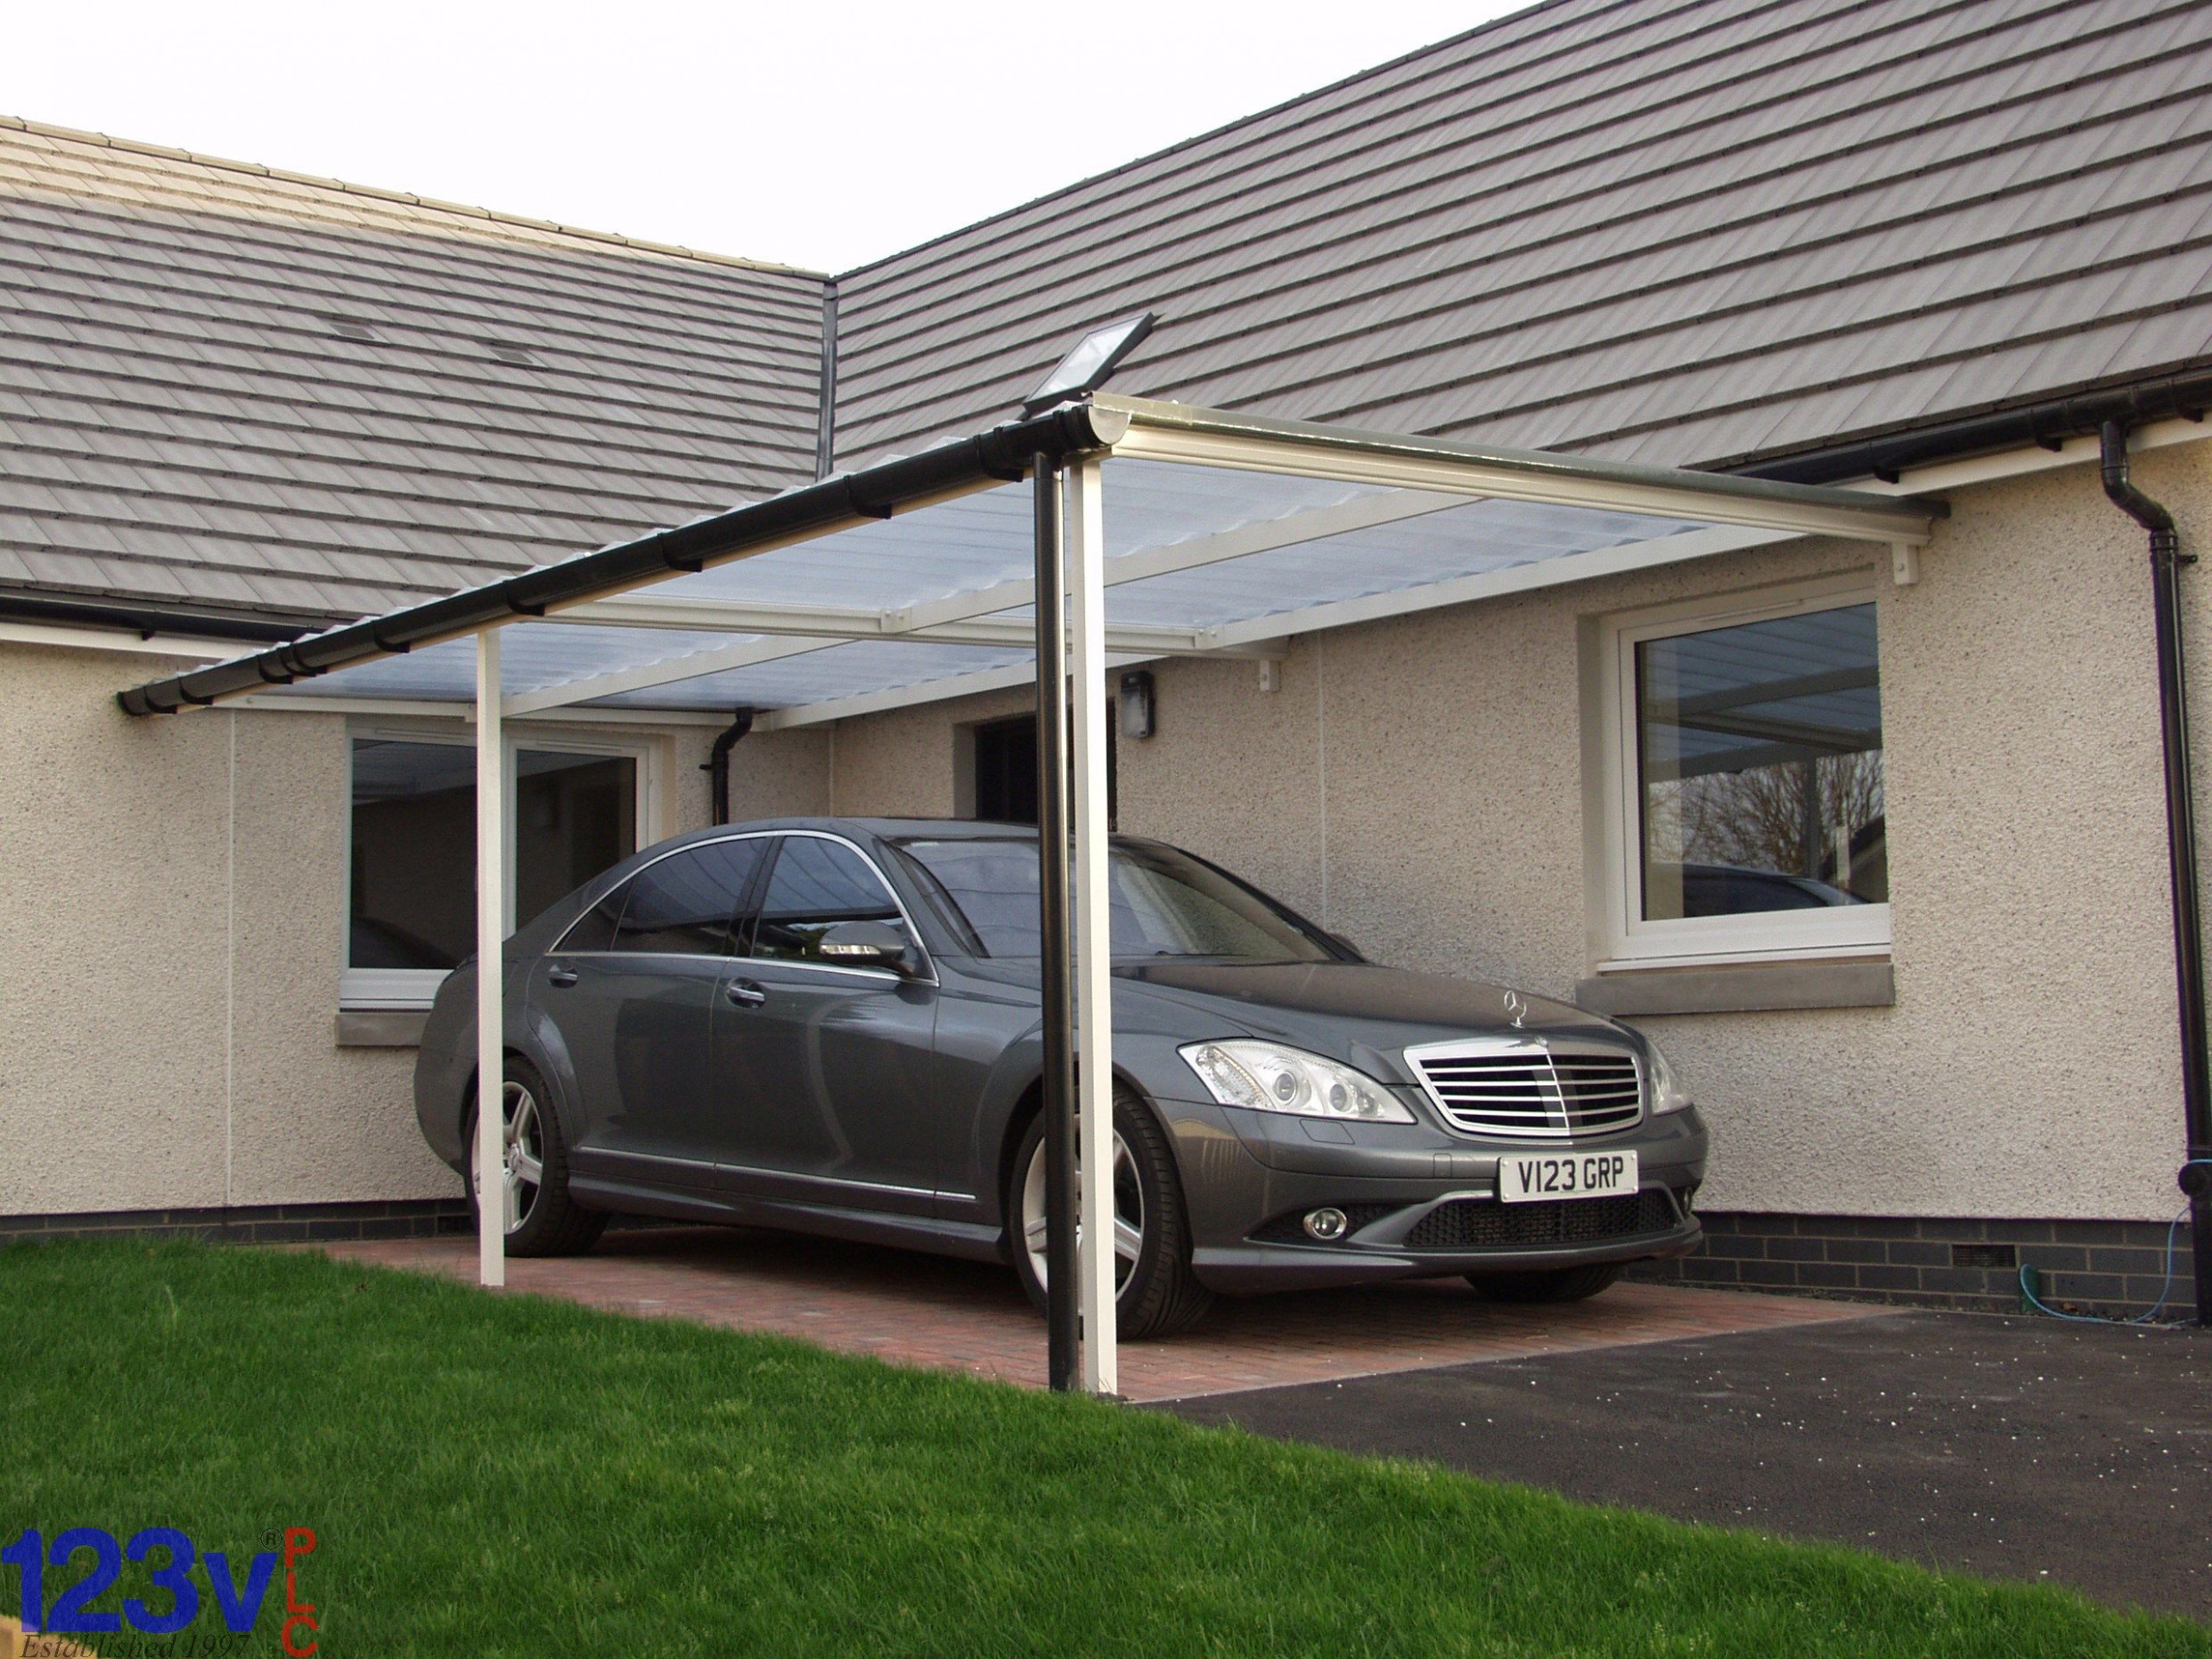 Car Canopy Uk & 9v Carport Canopy Neat Simple Practical ..